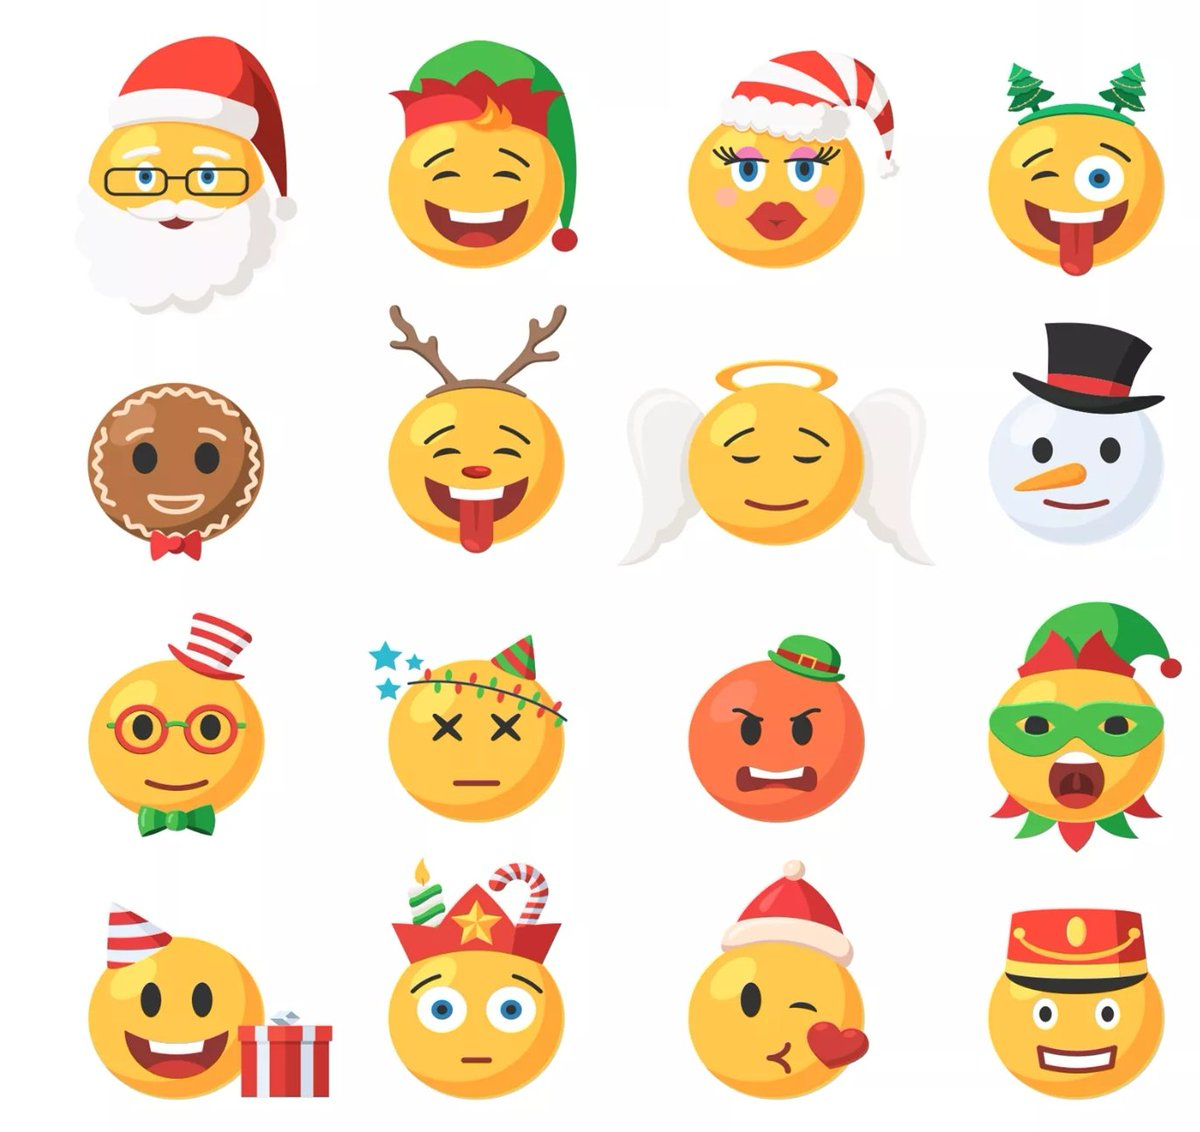 Look at these #NEW #CHRISTMAS #EMOJIS COMING THIS #FESTIVE SEASON   #RT SPREAD THE FABULOUS #NEWS   ONLY 180 DAYS TILL THE BIG DAY  <br>http://pic.twitter.com/rBBdJ1axOz